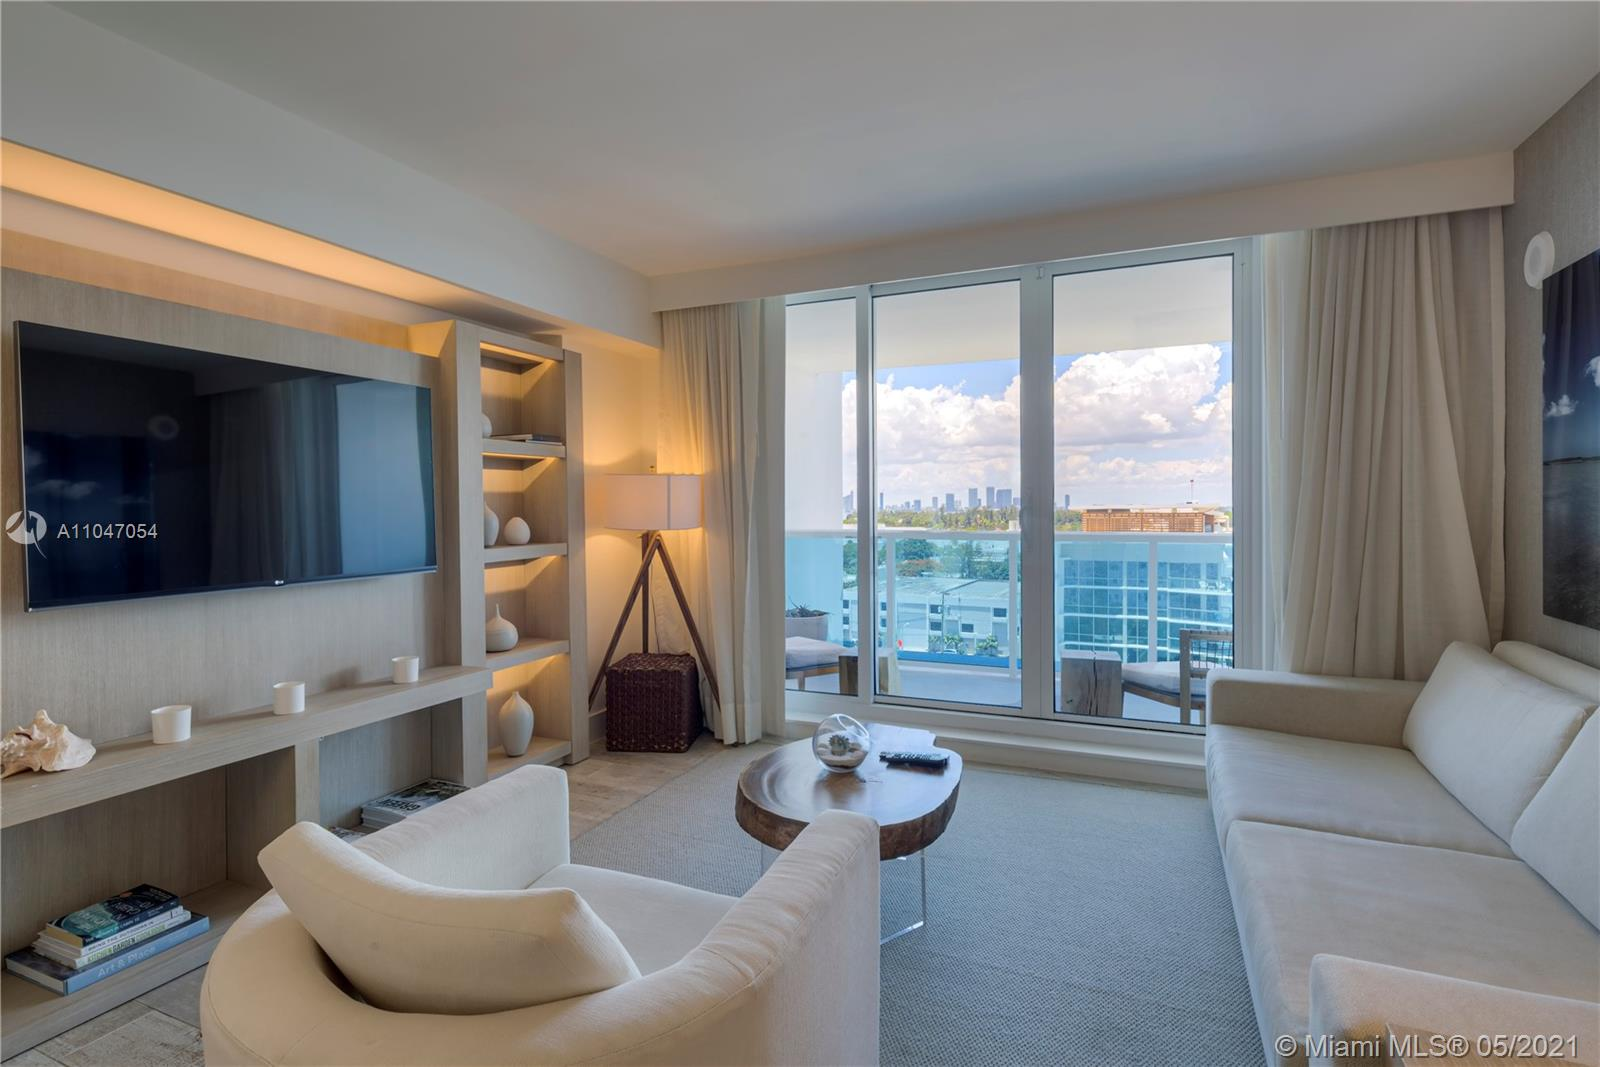 Gorgeous 2 bedroom skyline view 1,305 SF. luxury condo rents between 30% - 60% below the hotels listed rates. This condo is available for short term as well as yearly leases.  Luxurious linens and towels, Gilchrist & Soames toiletries, daily coffee and tea. Residence comes with a fully furnished private balcony with views of the Miami skyline. Custom Italian and Brazilian furniture package provided by the hotel. Plush living room sofa that converts into a queen bed, ItalKraft kitchen with stainless Bosch and Sub Zero appliances, as well as a four seater dining table. Our guests have access to all of the hotel amenities including 4 swimming pools, 4 restaurants, beach service, cabanas, fitness center, spa, valet service, concierge, ballroom, conference rooms and more.